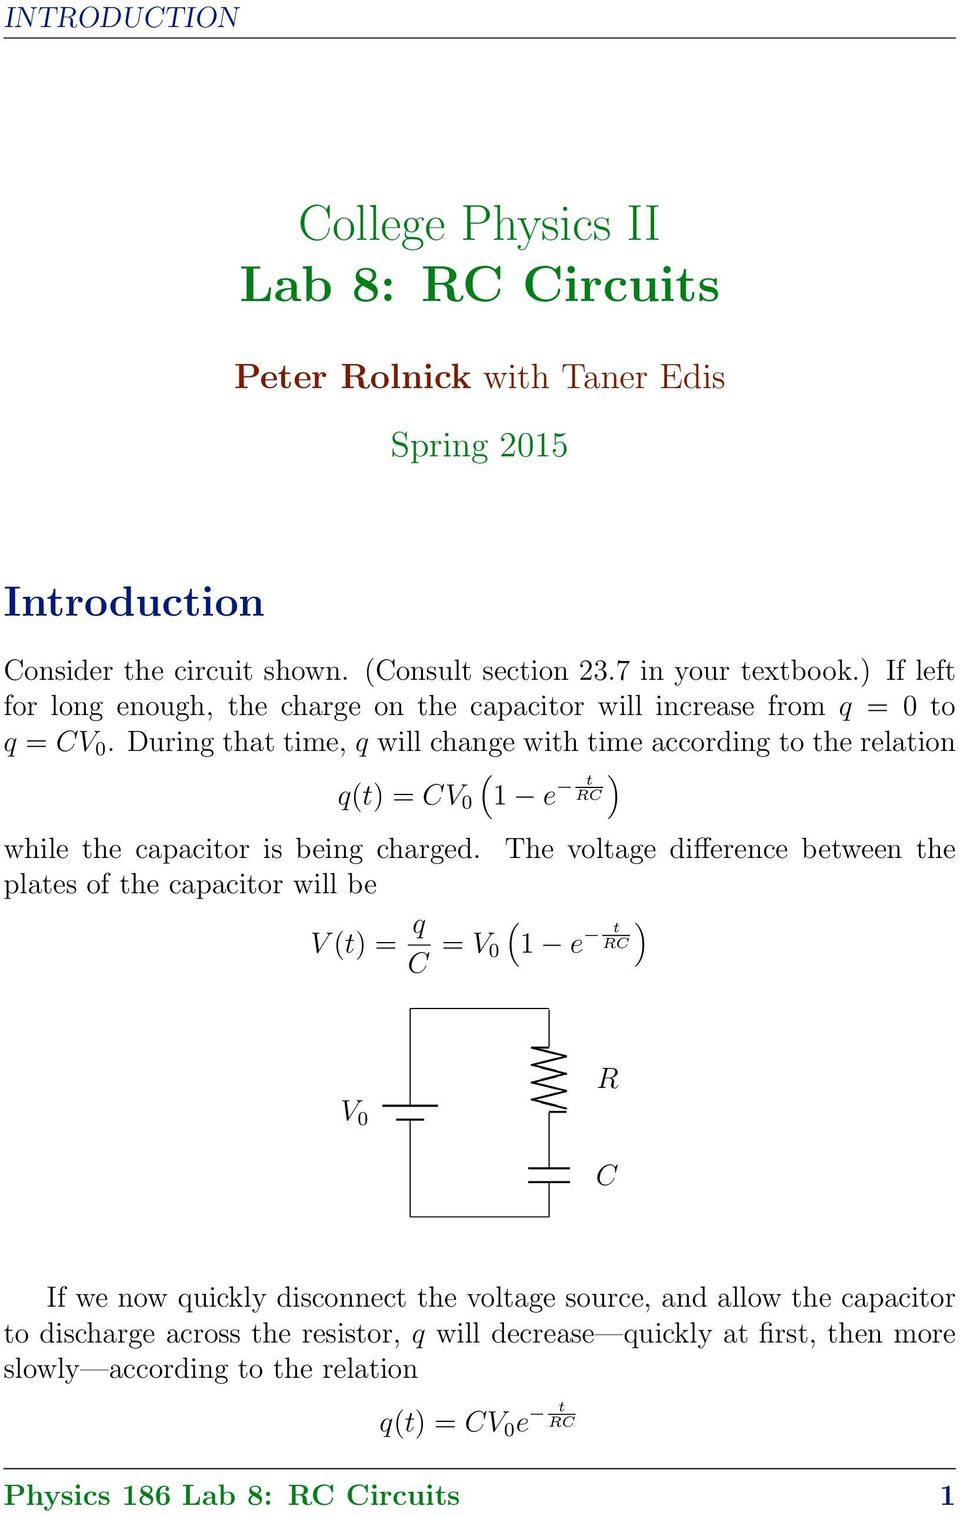 College Physics Ii Lab 8 Rc Circuits Pdf Impedance The Frequency Dependent Of An Series Circuit During That Time Q Will Change With According To Relation Qt